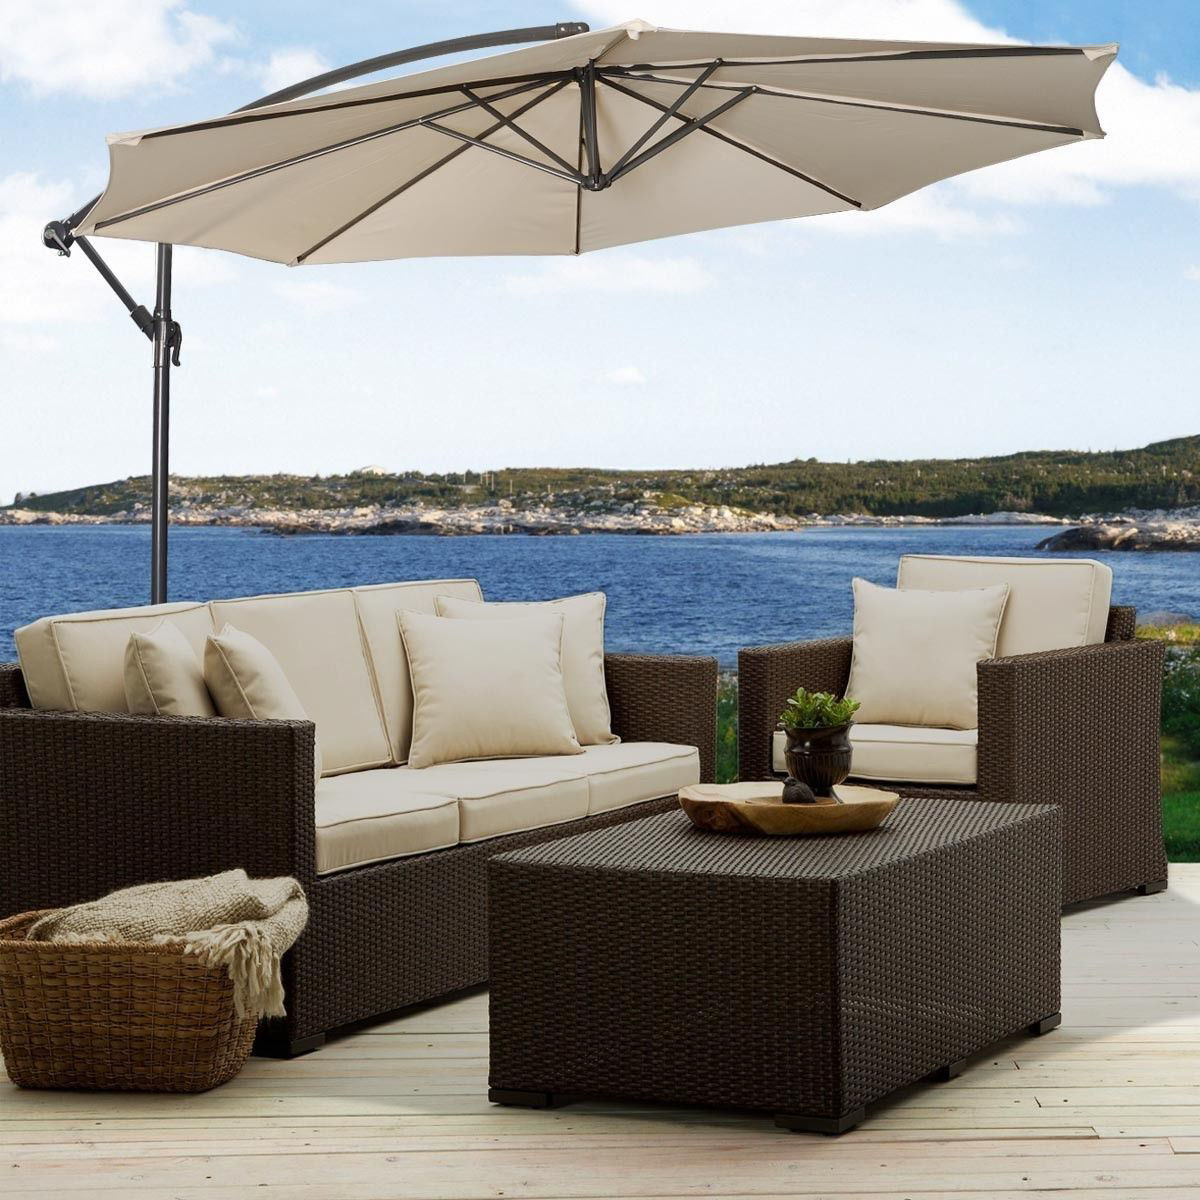 Picture of Outdoor 10' Patio Umbrella Patio With Cross Base